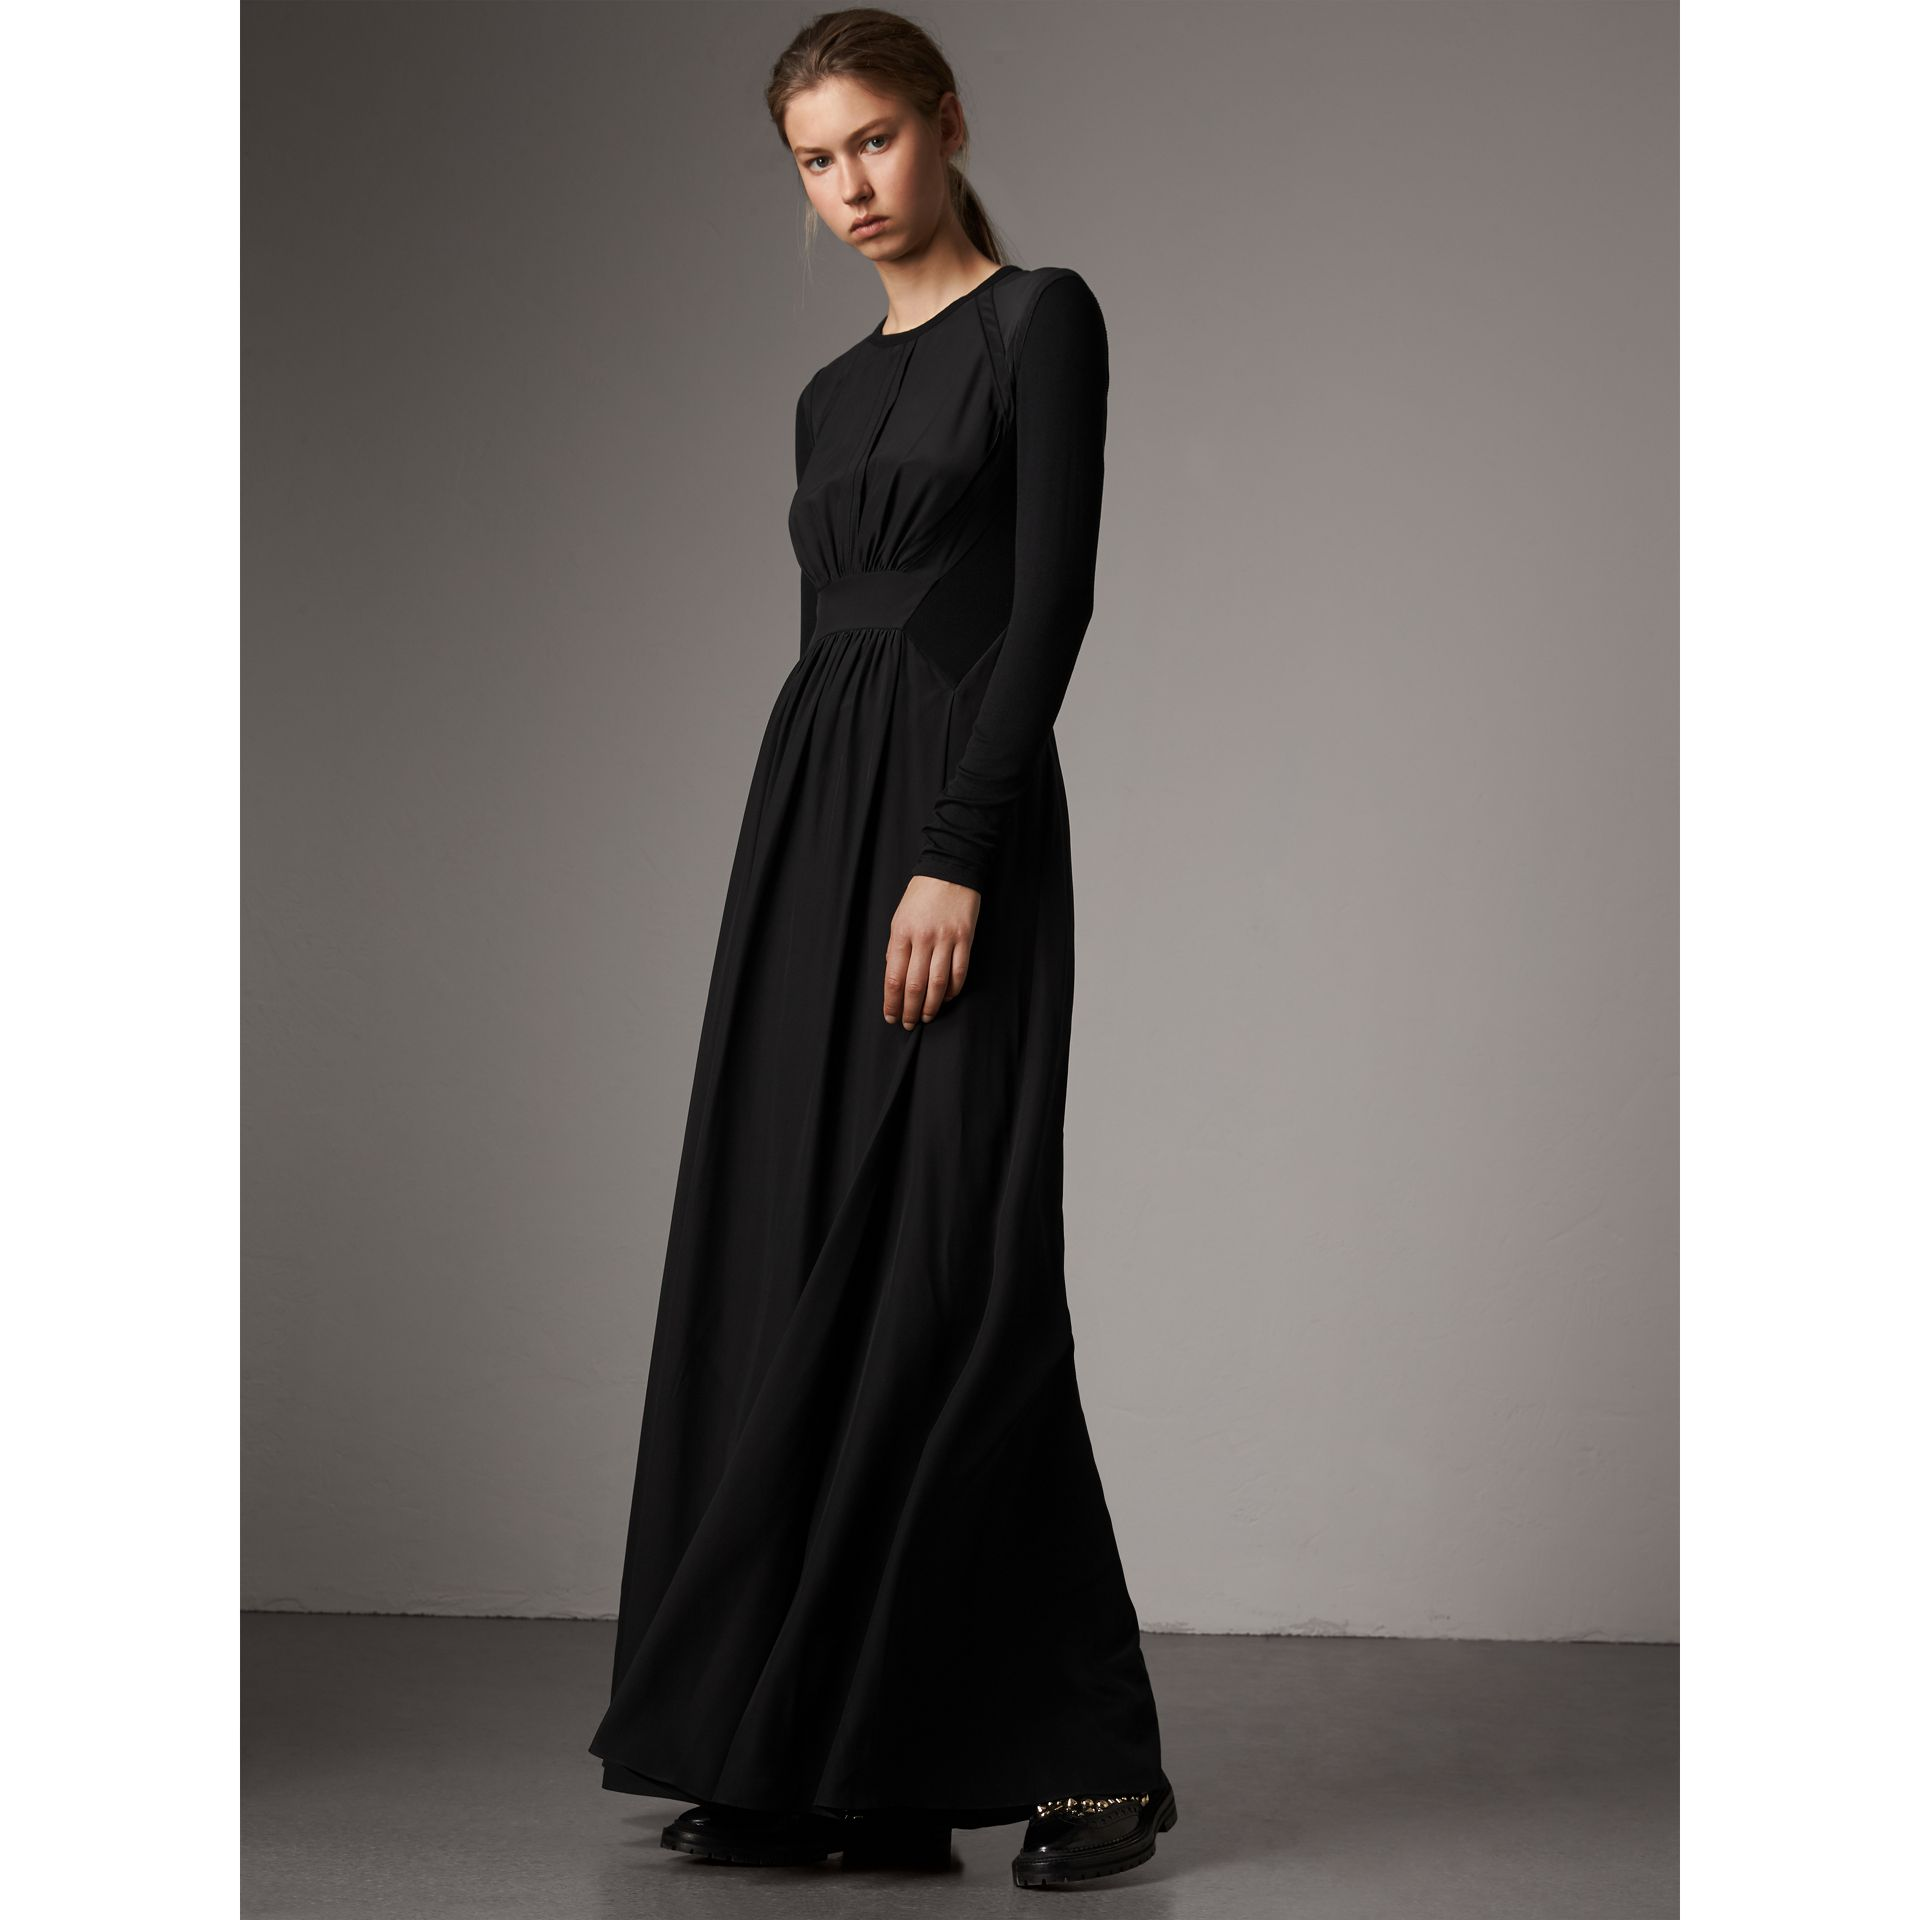 Silk Floor-length Gathered Dress in Black - Women | Burberry Australia - gallery image 1